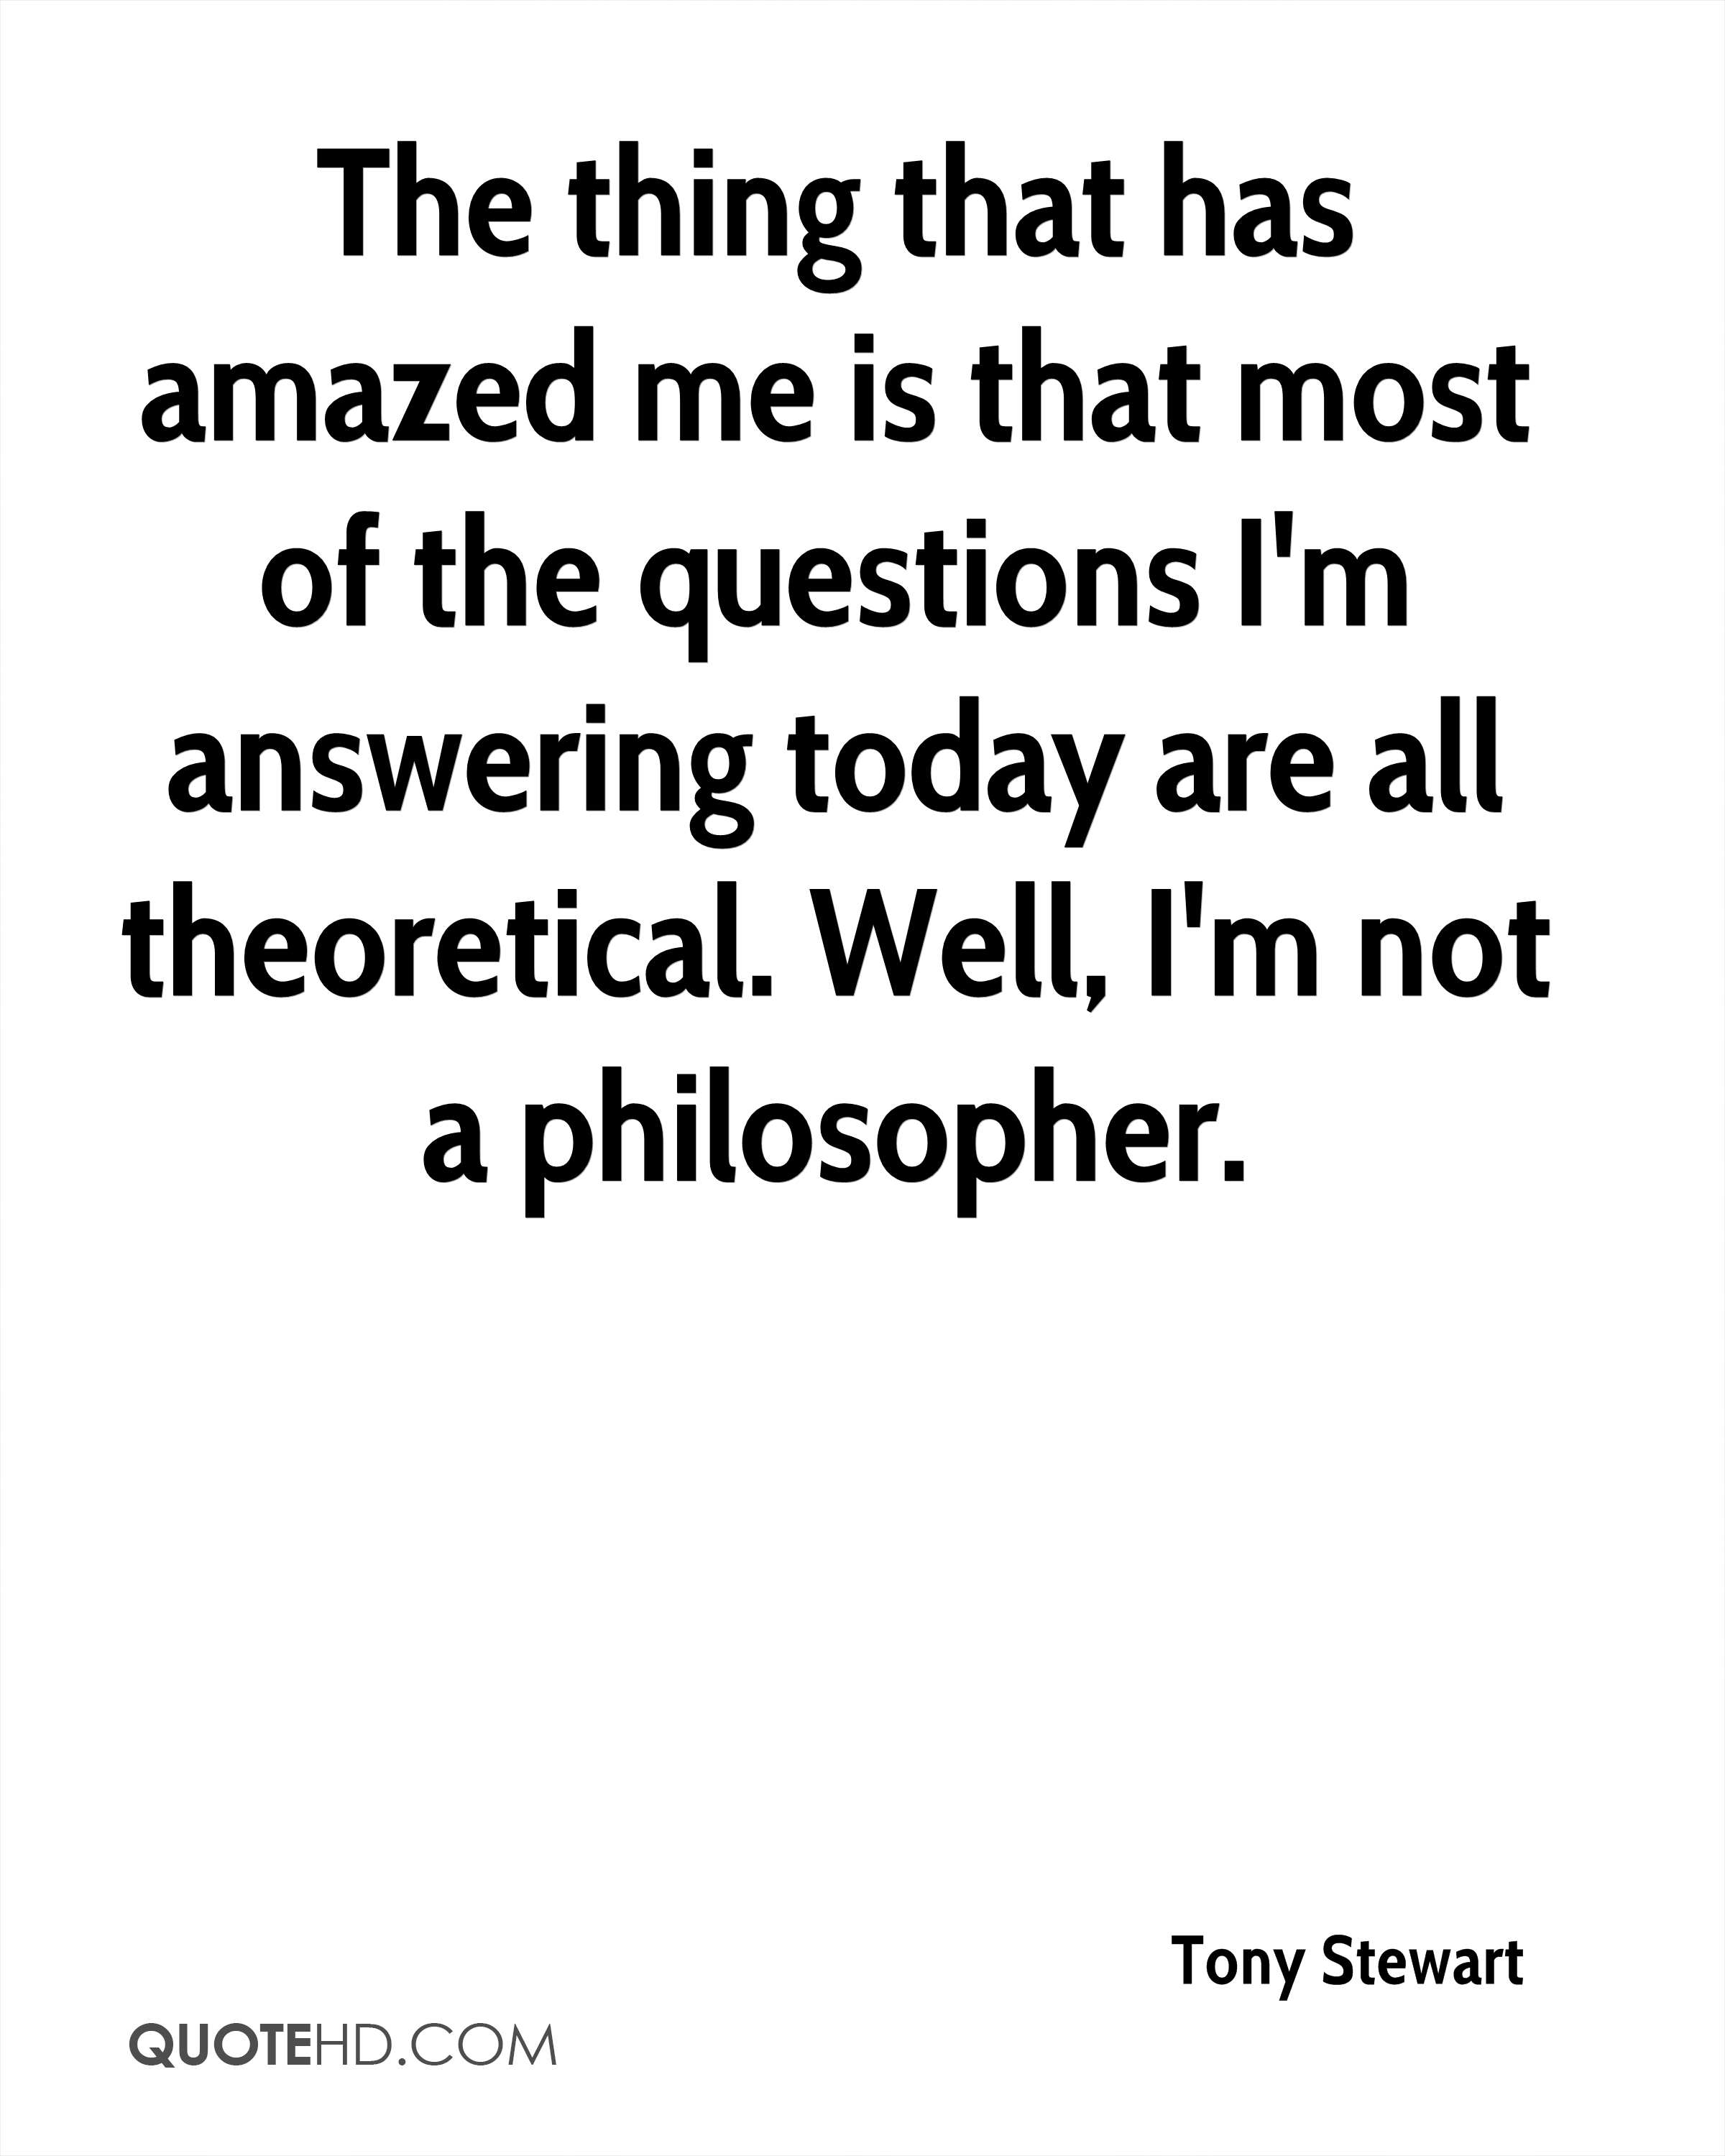 The thing that has amazed me is that most of the questions I'm answering today are all theoretical. Well, I'm not a philosopher.